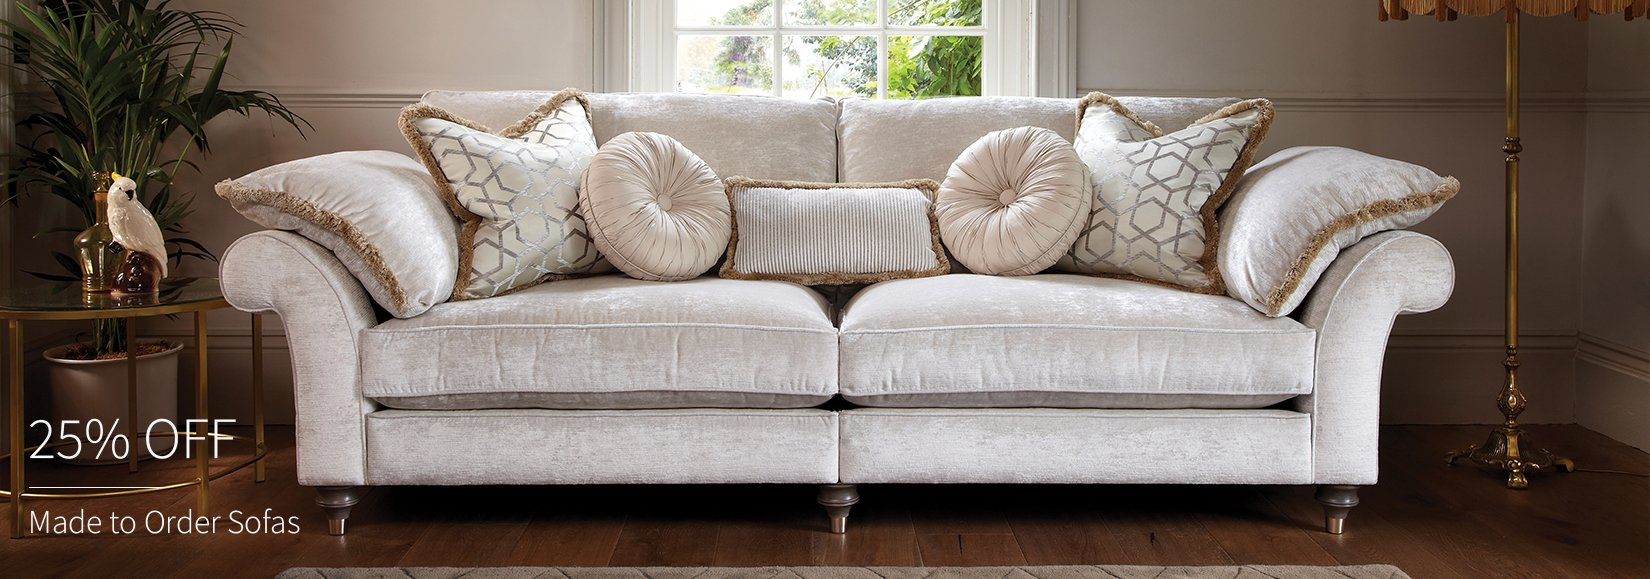 Made to Order Sofas